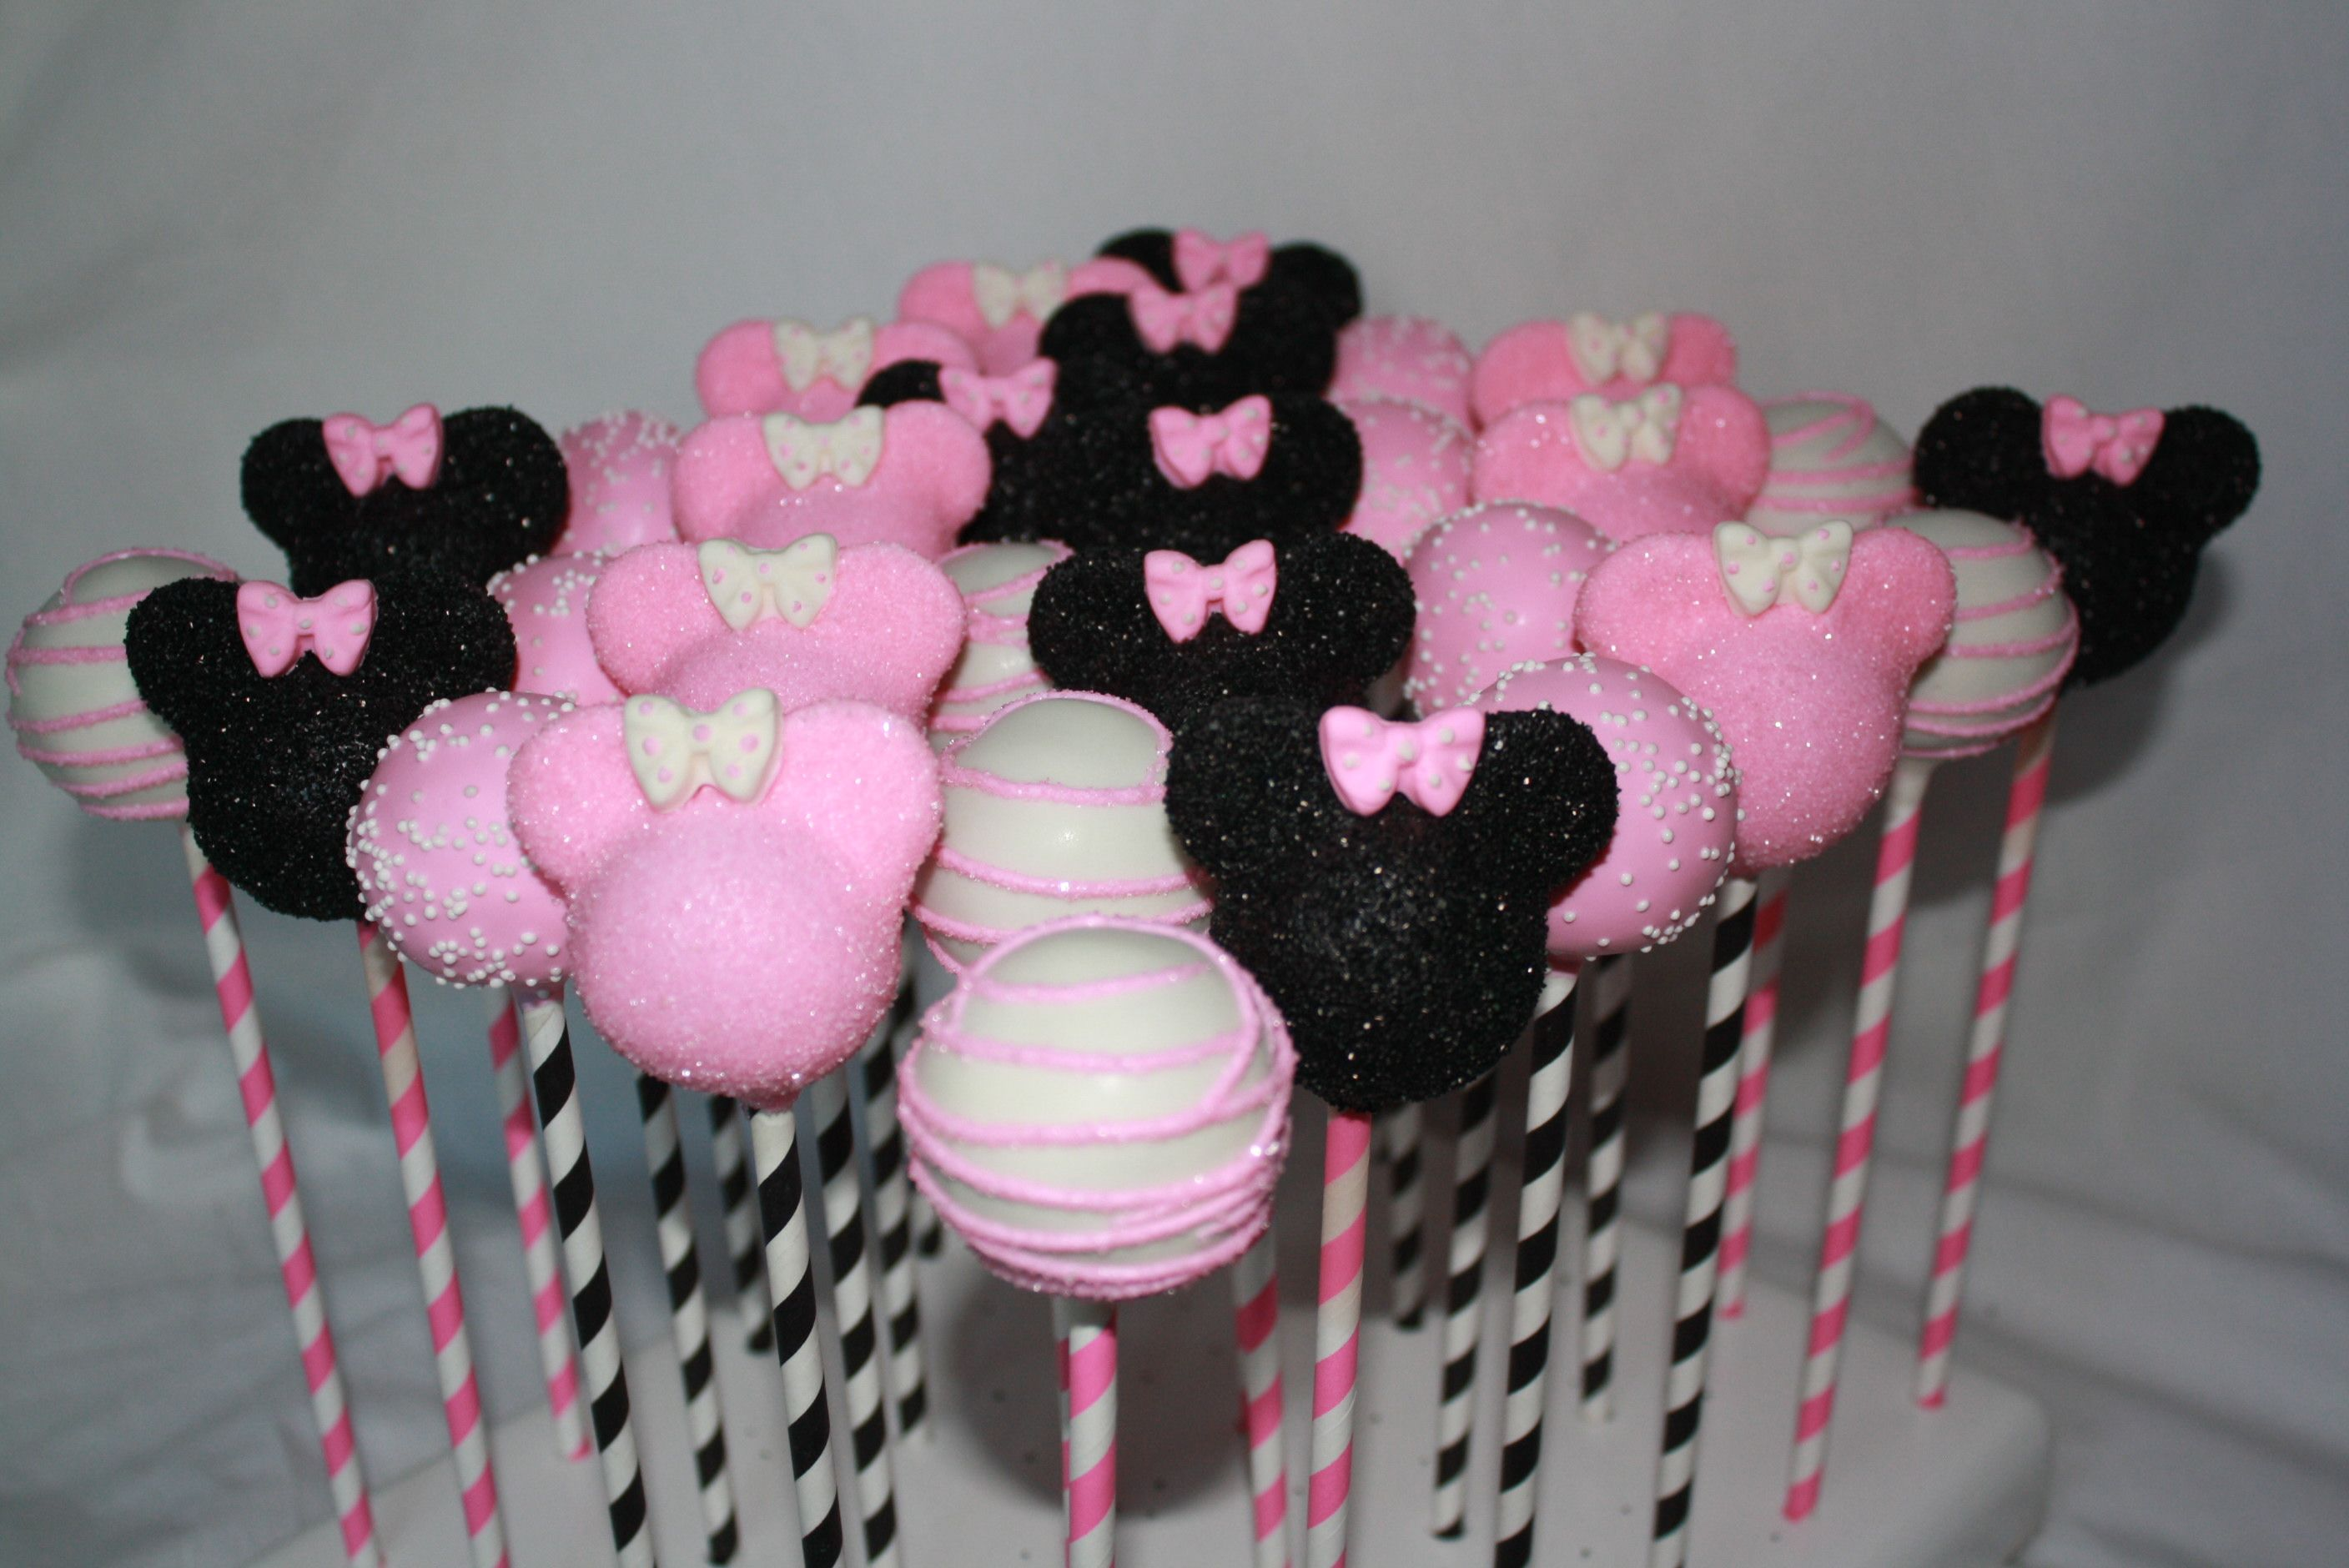 cake pops cake balls pink minnie mouse cake pops on paper straws nichole pinterest. Black Bedroom Furniture Sets. Home Design Ideas